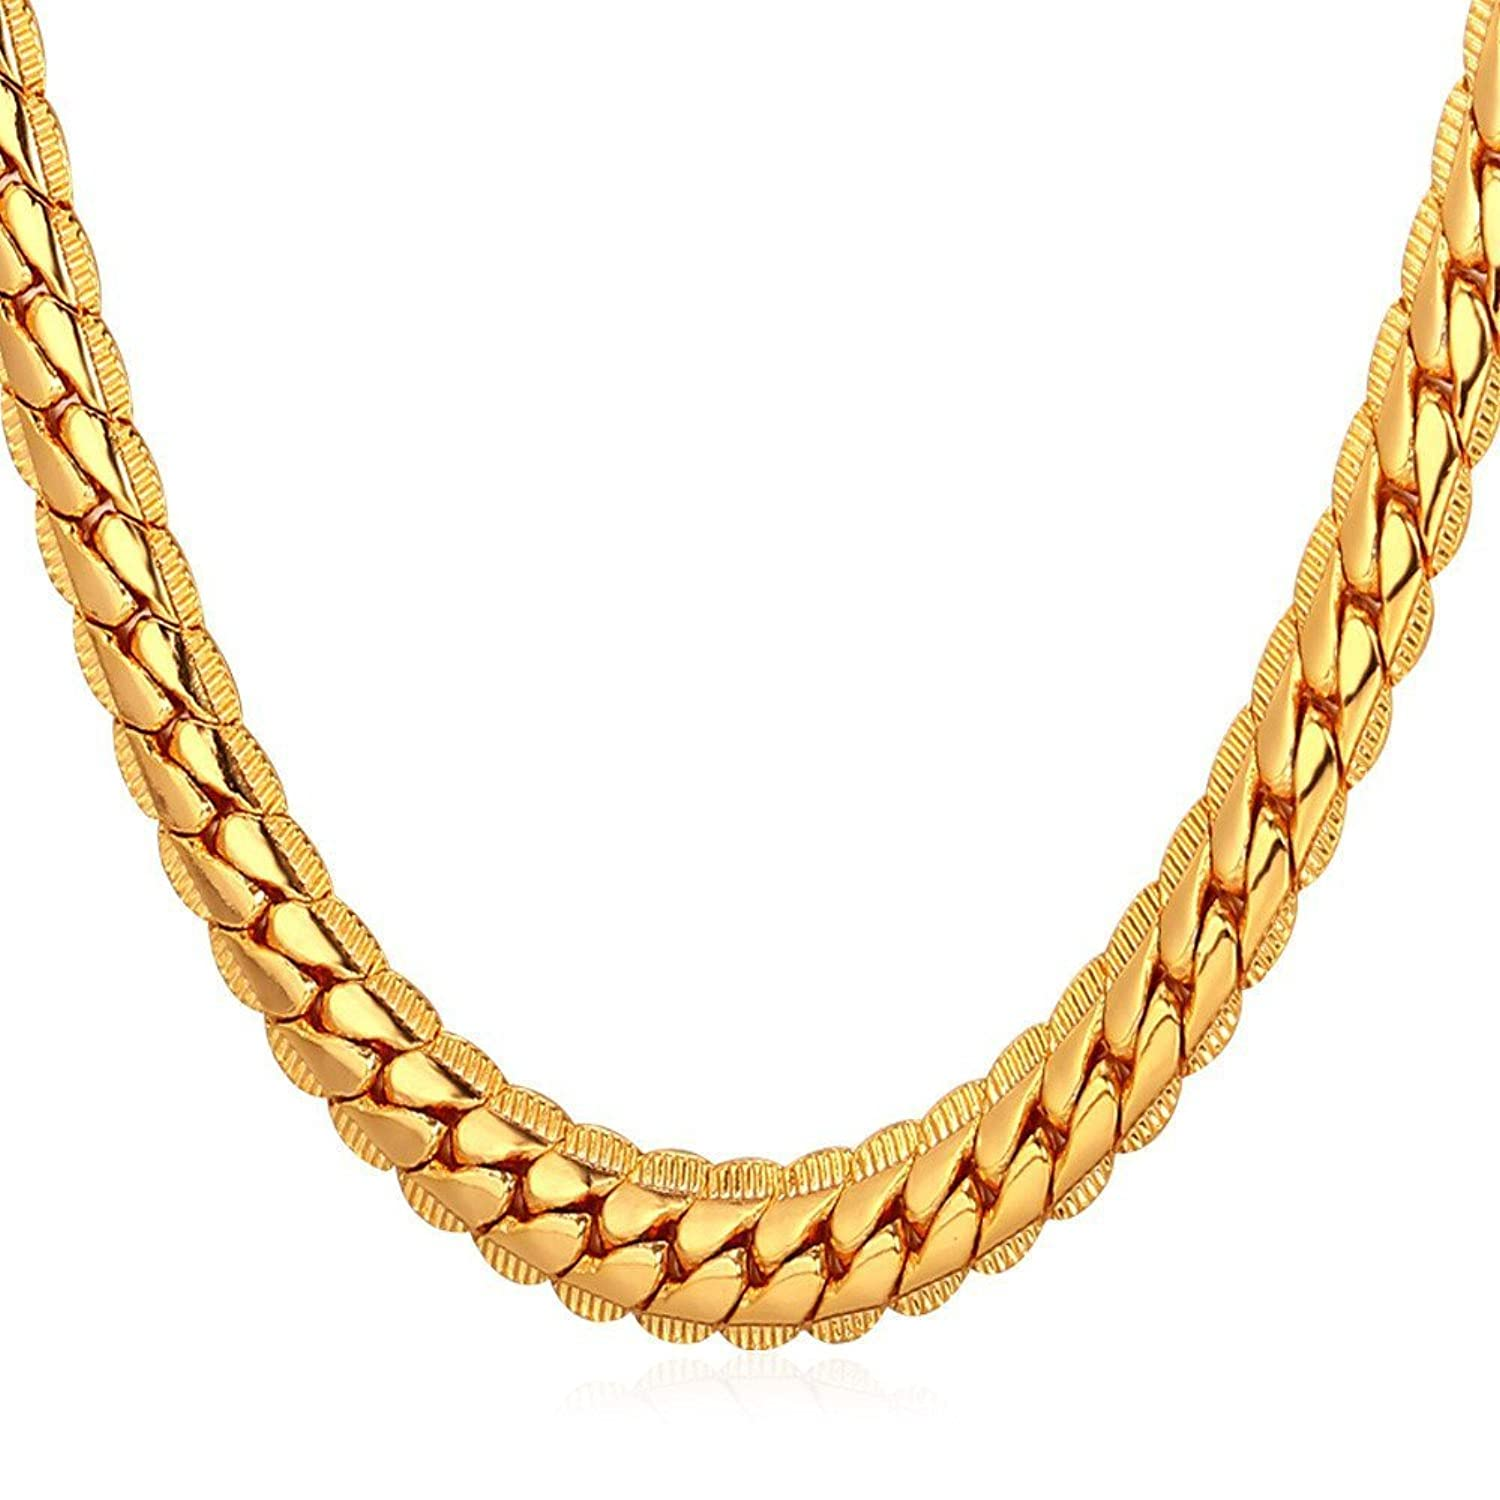 itm chains mens mm img white chain ebay or jewelry men necklace solid rope inches gold ladies